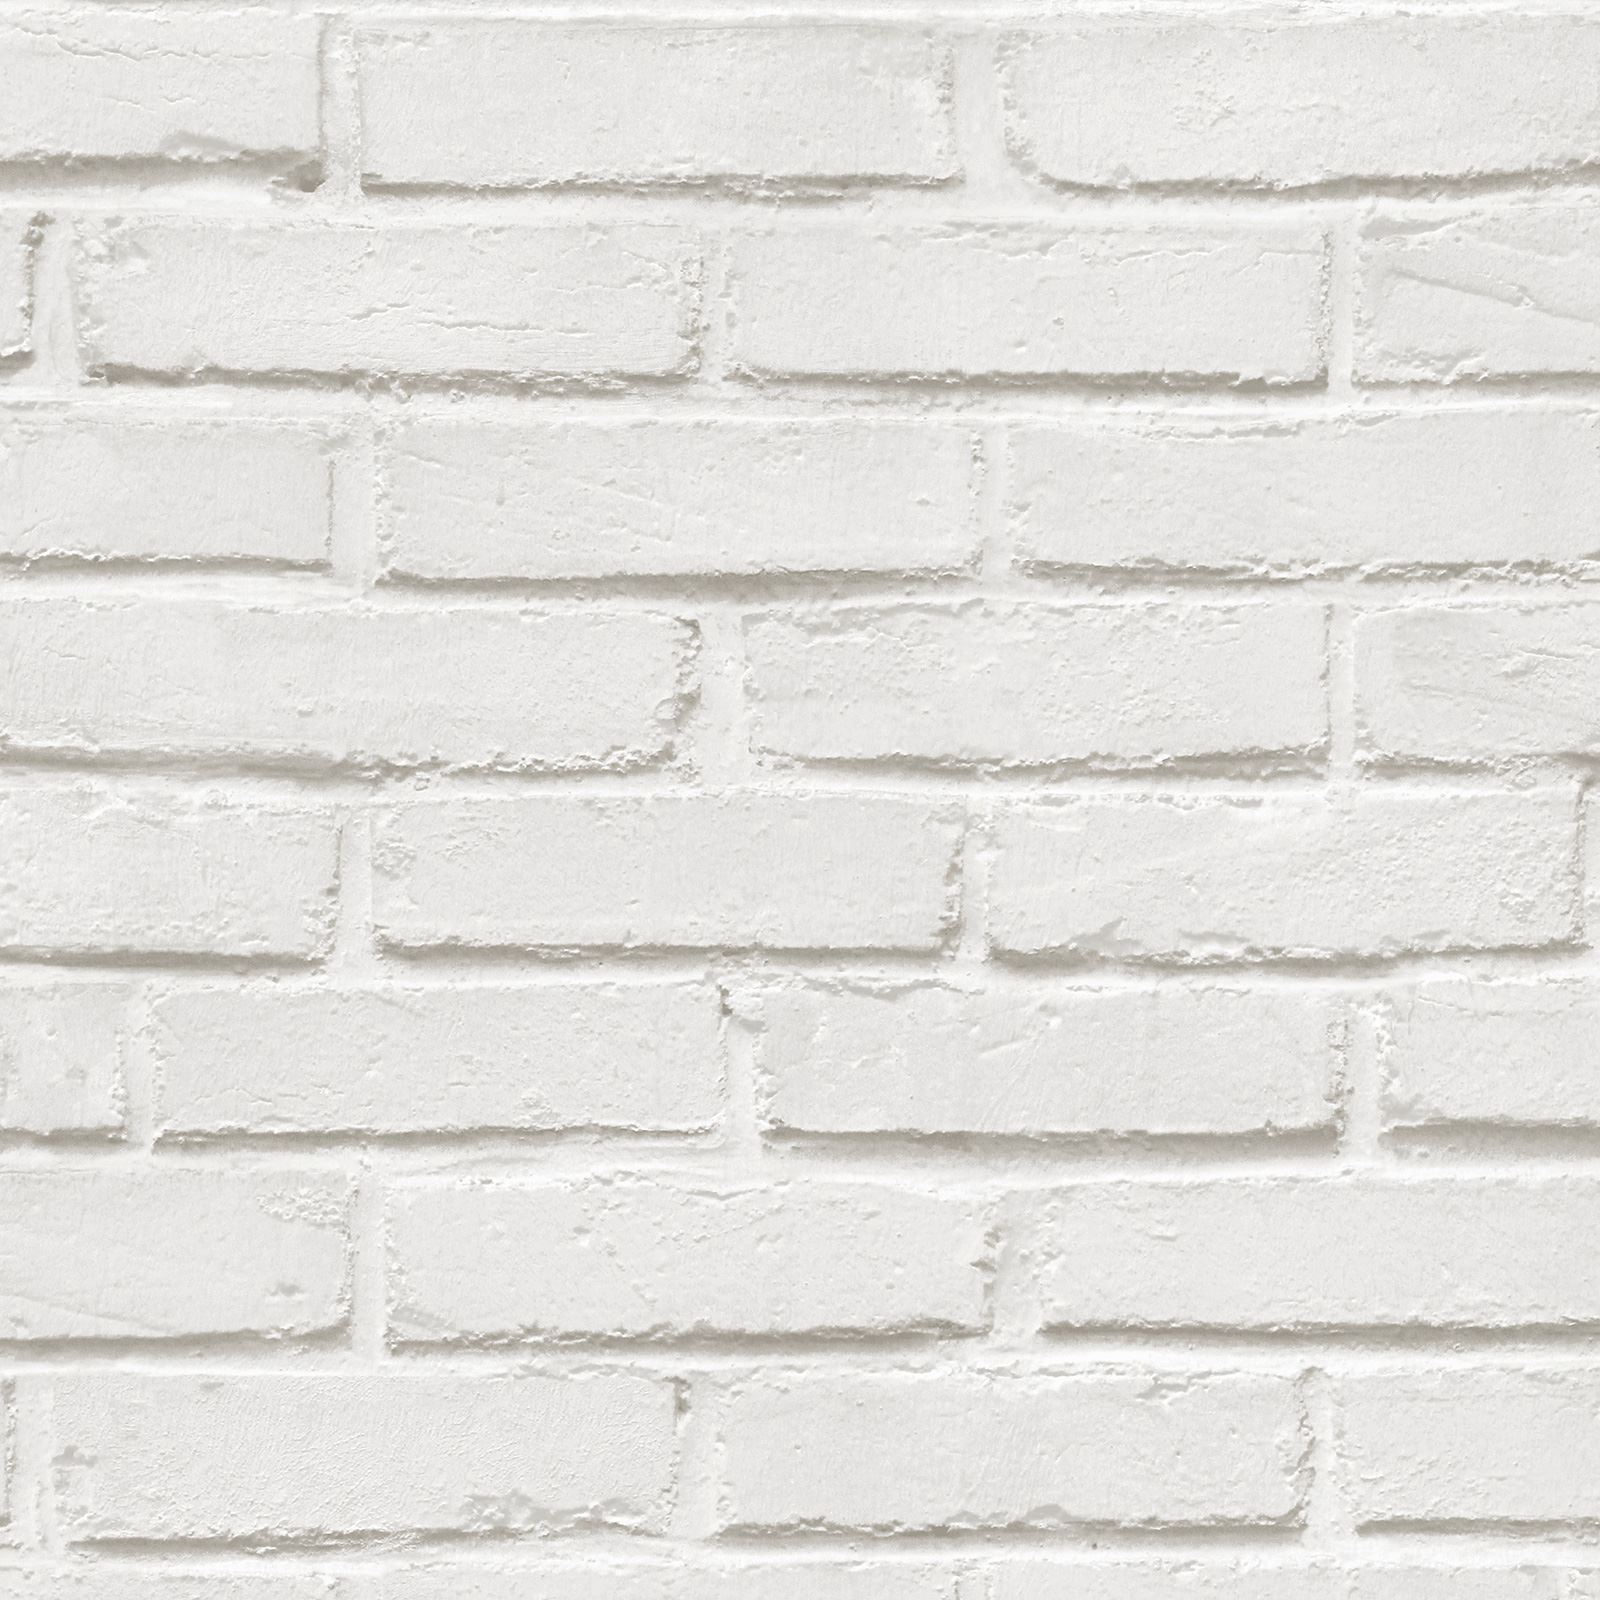 Design White Brick rustic brick wall wallpaper white 575319 ugepa ebay image is loading ugepa